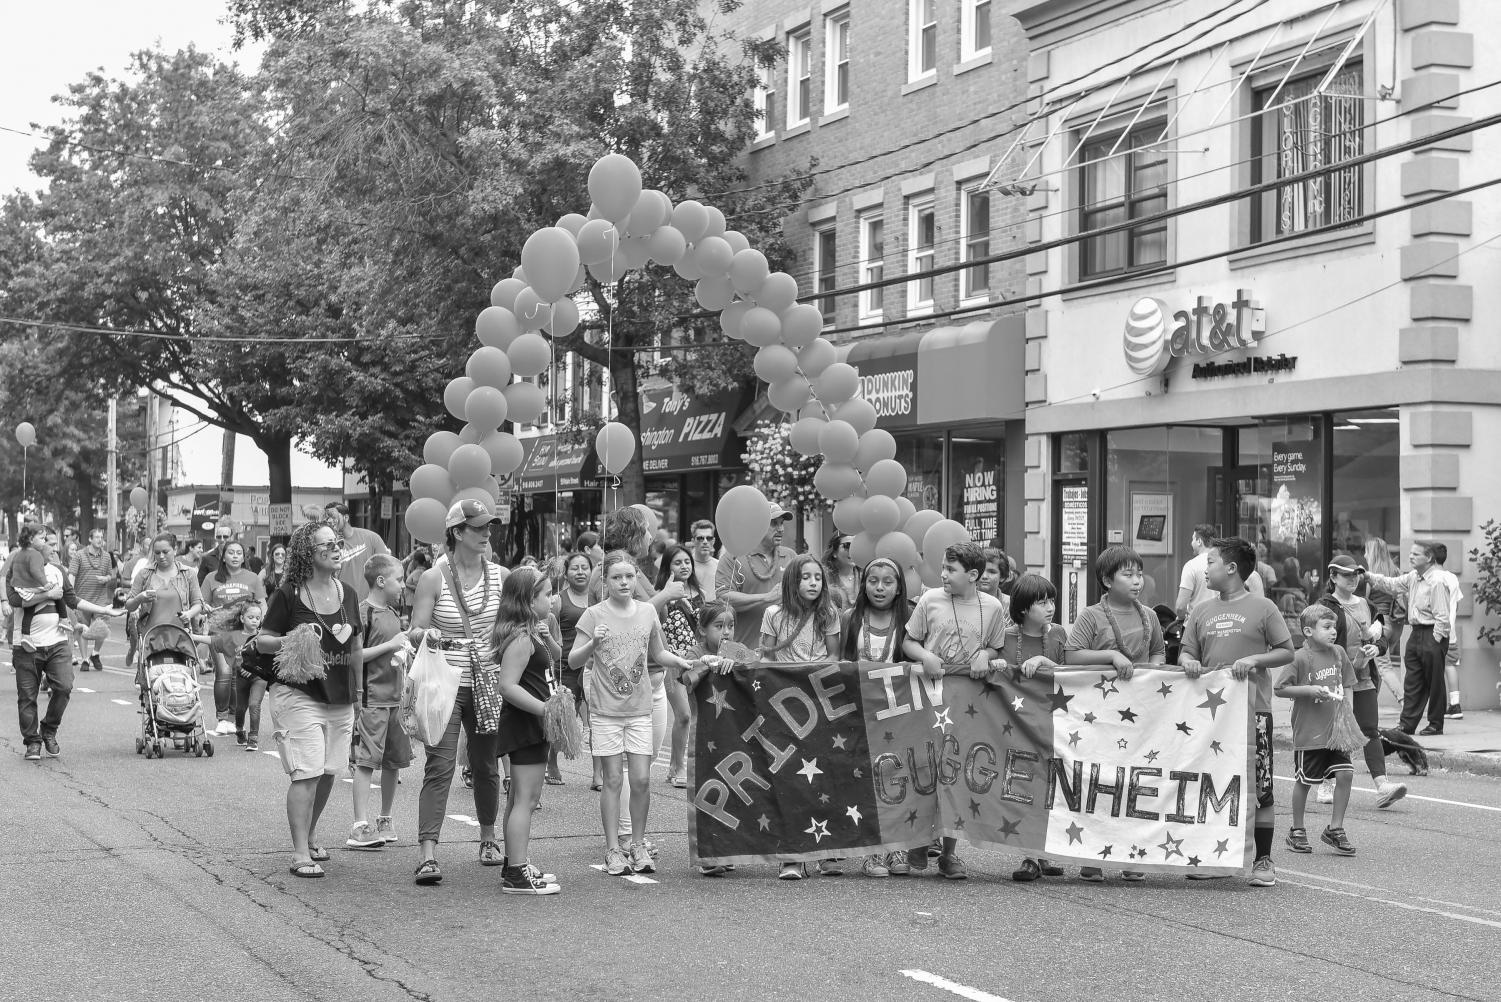 Guggenheim students march in the 29th annual Pride in Port parade, an event that has held a hallmark spot in the town for many years.